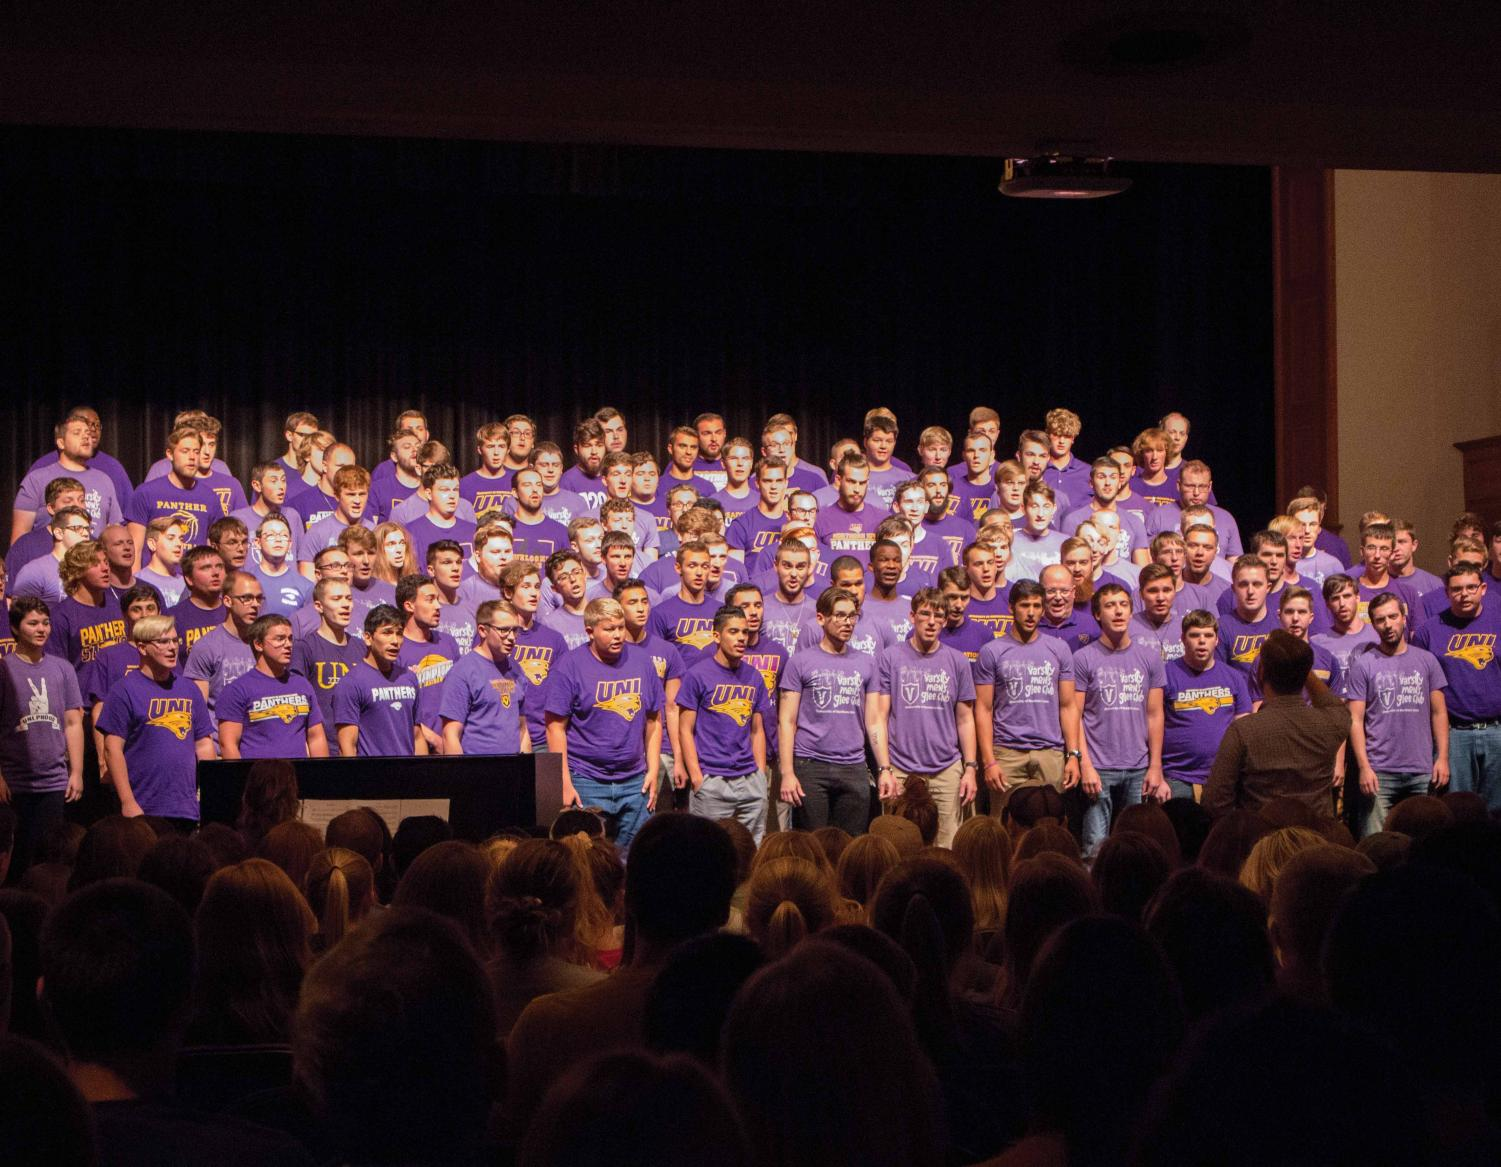 The UNI Varsity Men's Glee Club will be holding their fourth annual Welcome Home concert in Lang Hall Auditorium on Friday, Aug. 24 at 6 P.M.